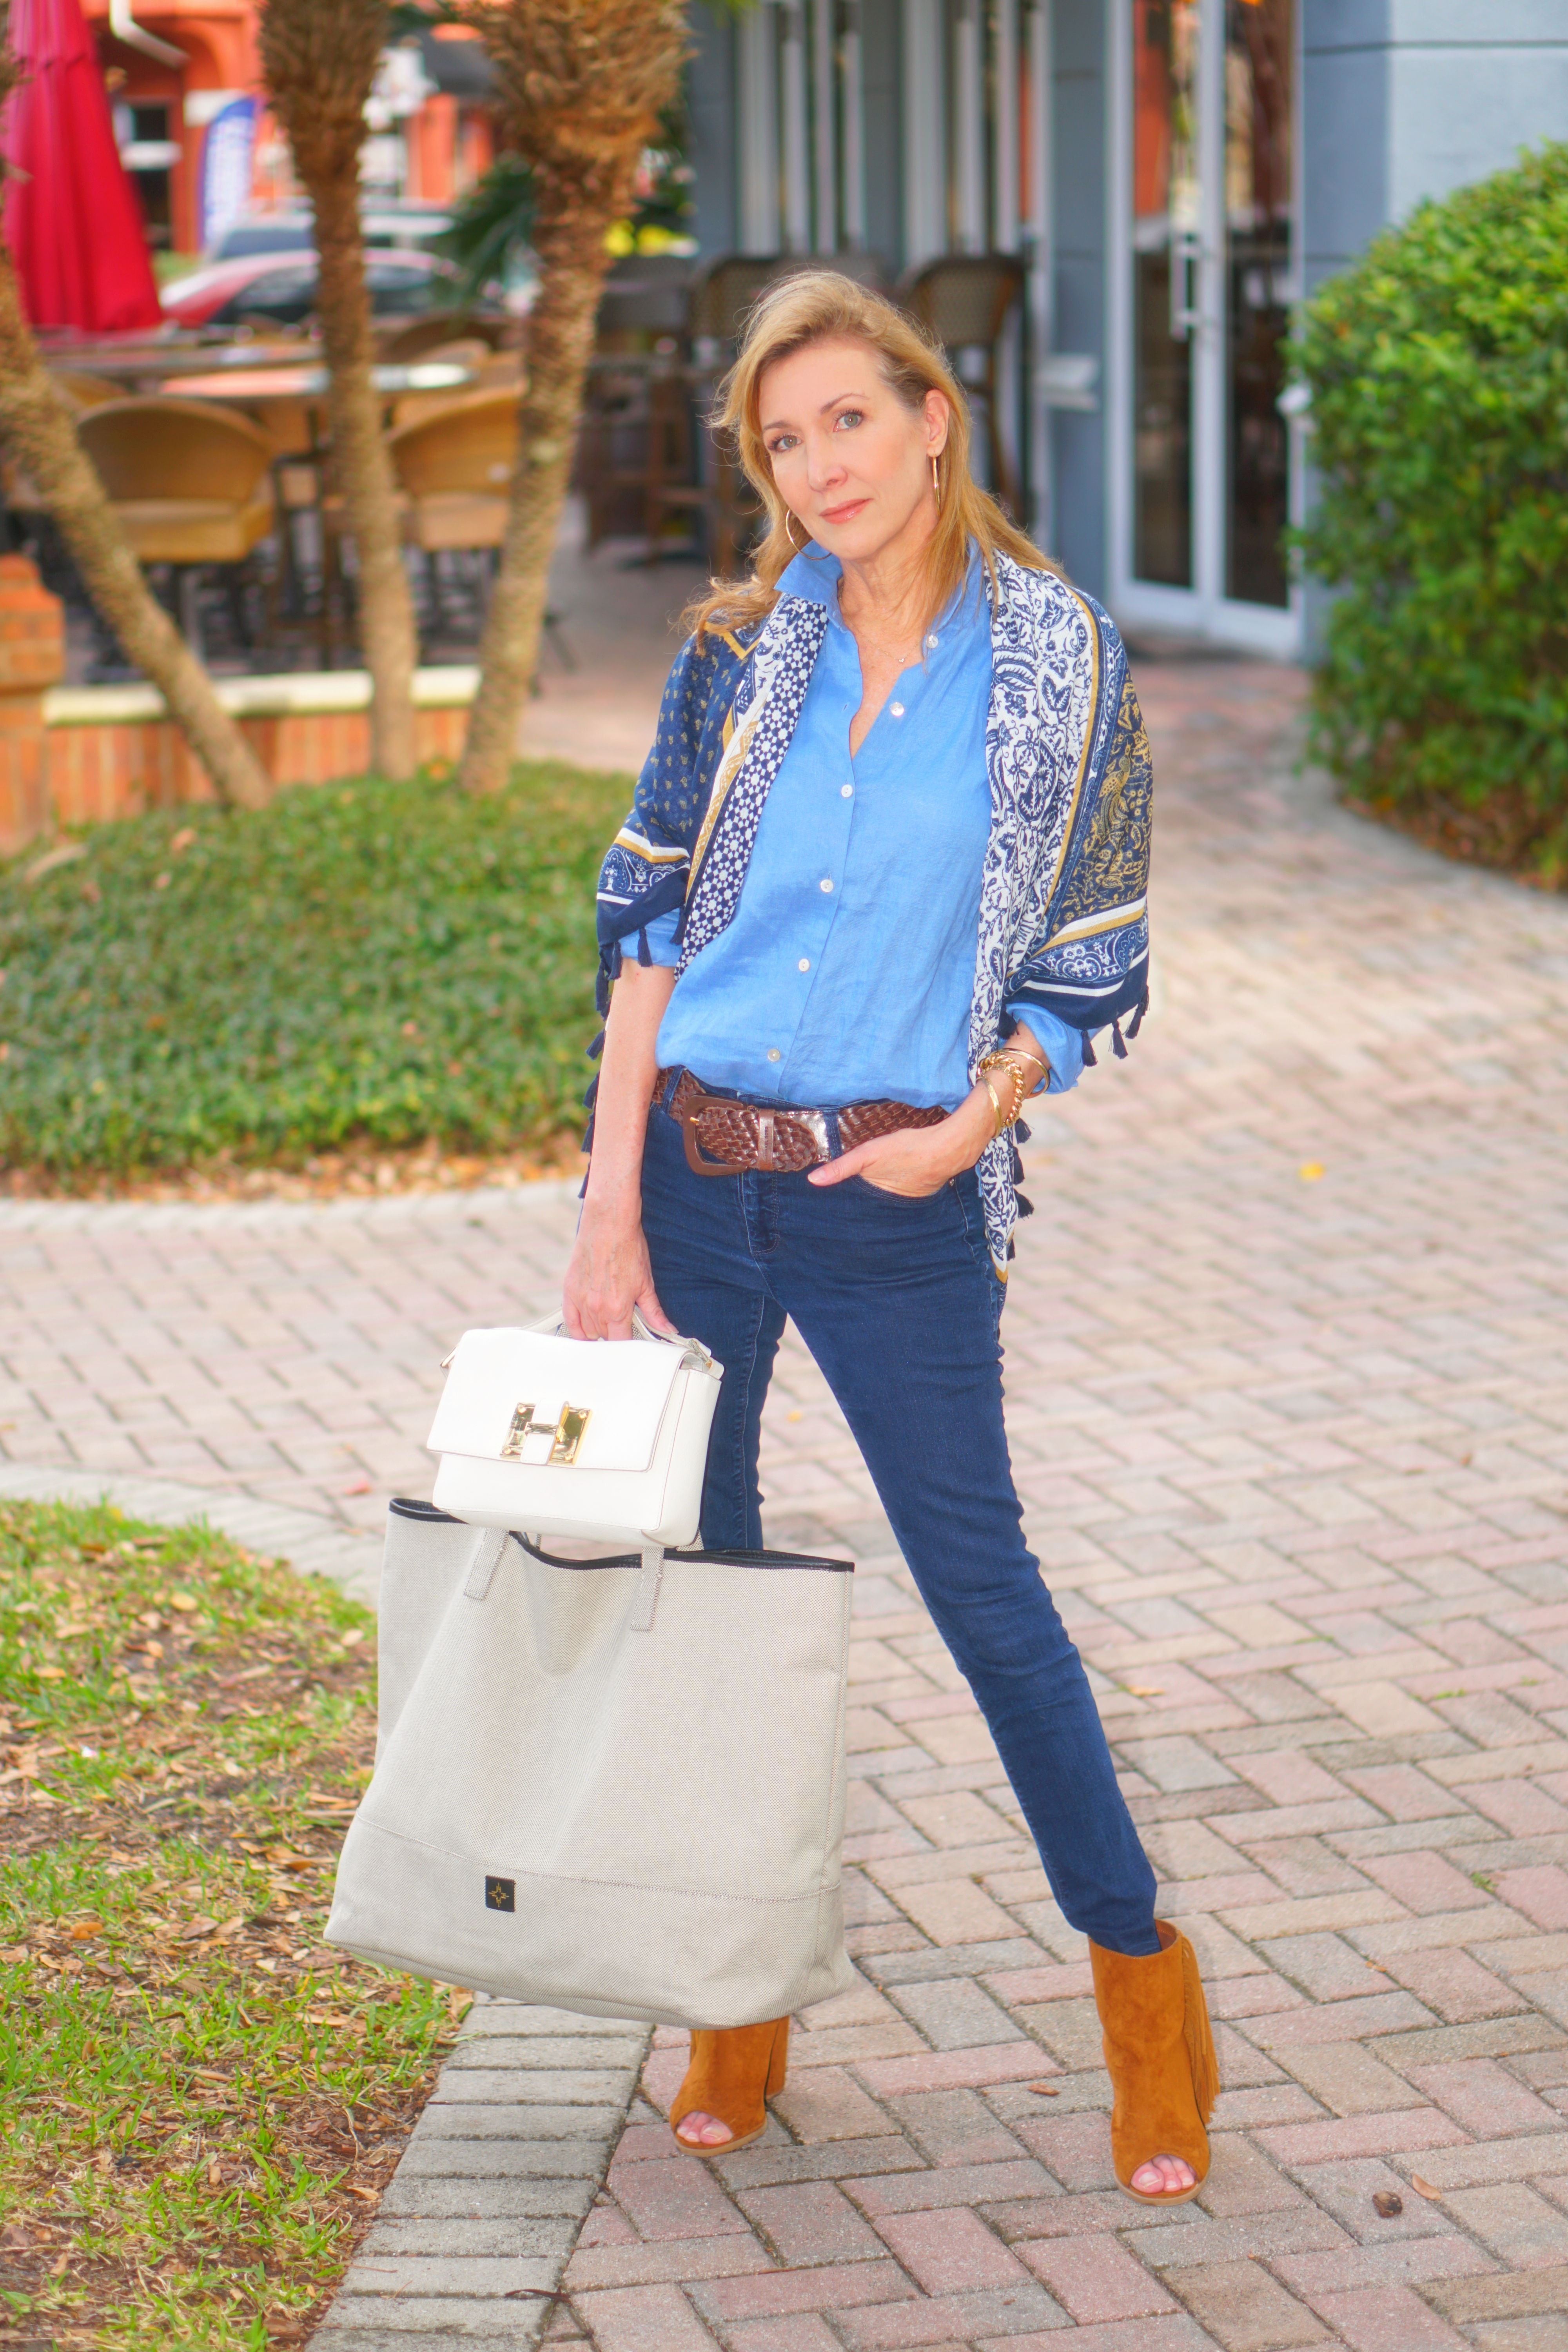 Woman in blue jeans and blue top carrying a bag